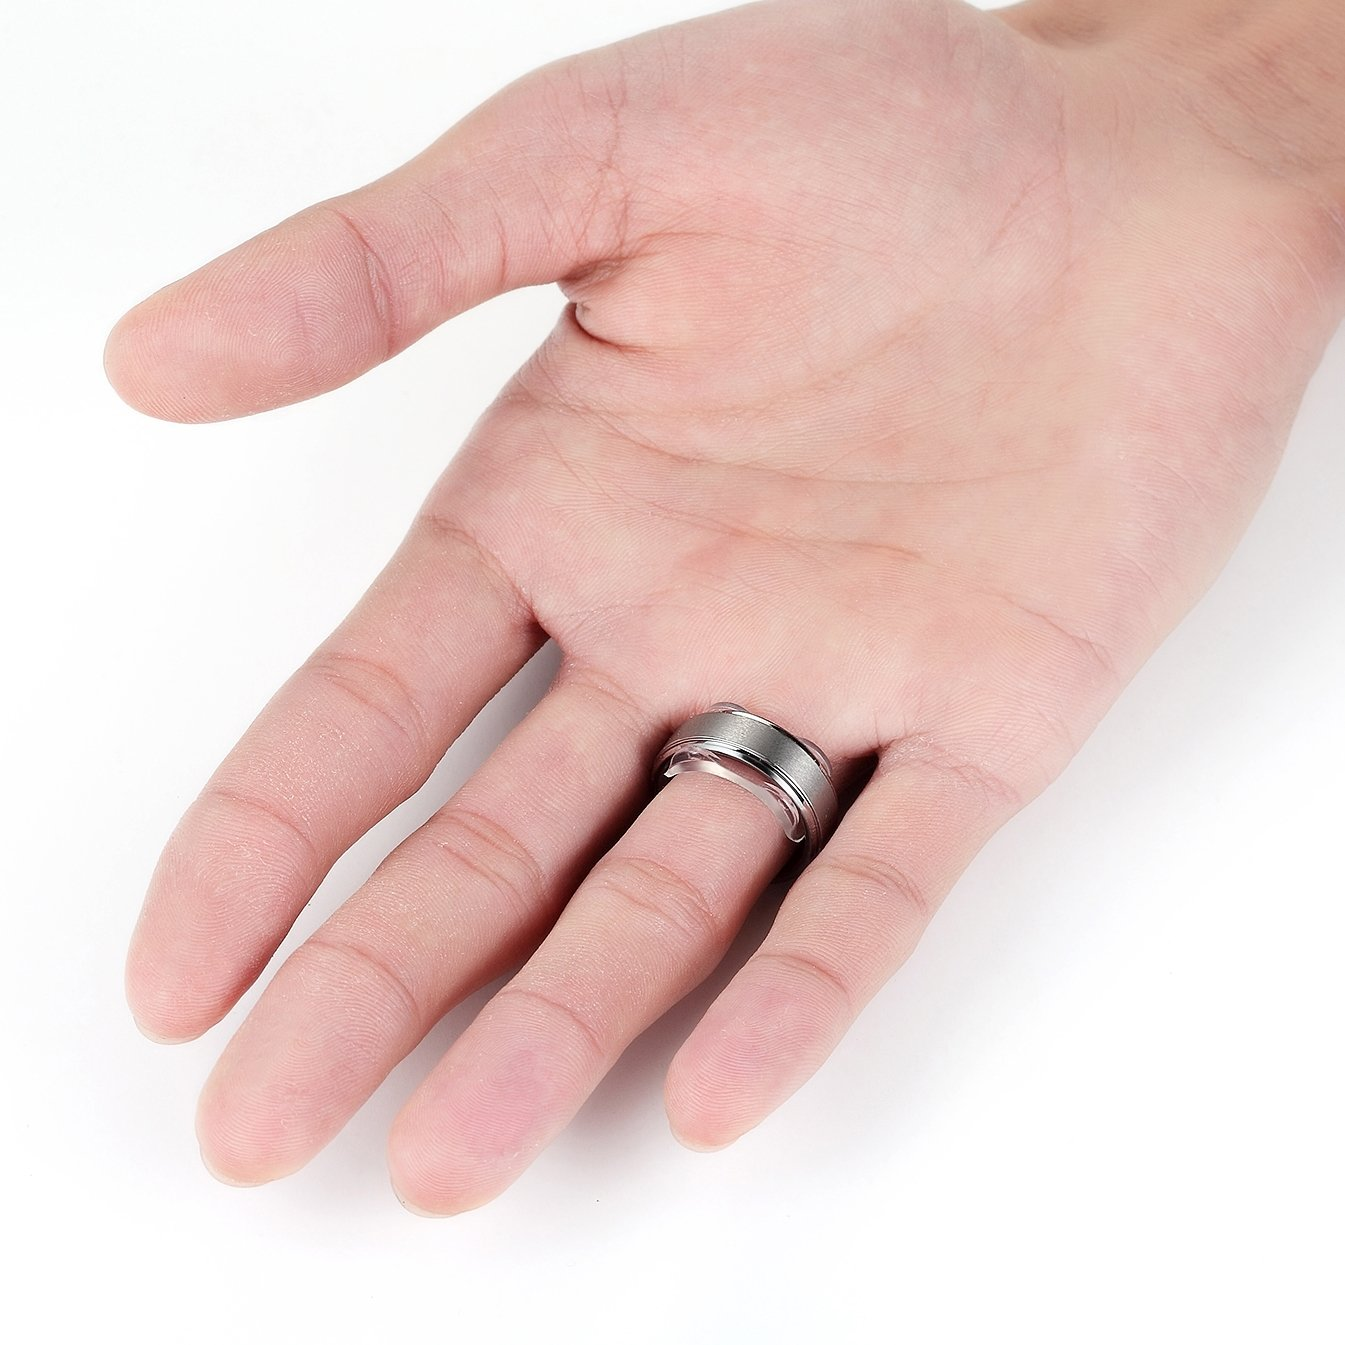 Amazon.com: Invisible Ring Size Adjuster for Loose Rings Ring ...